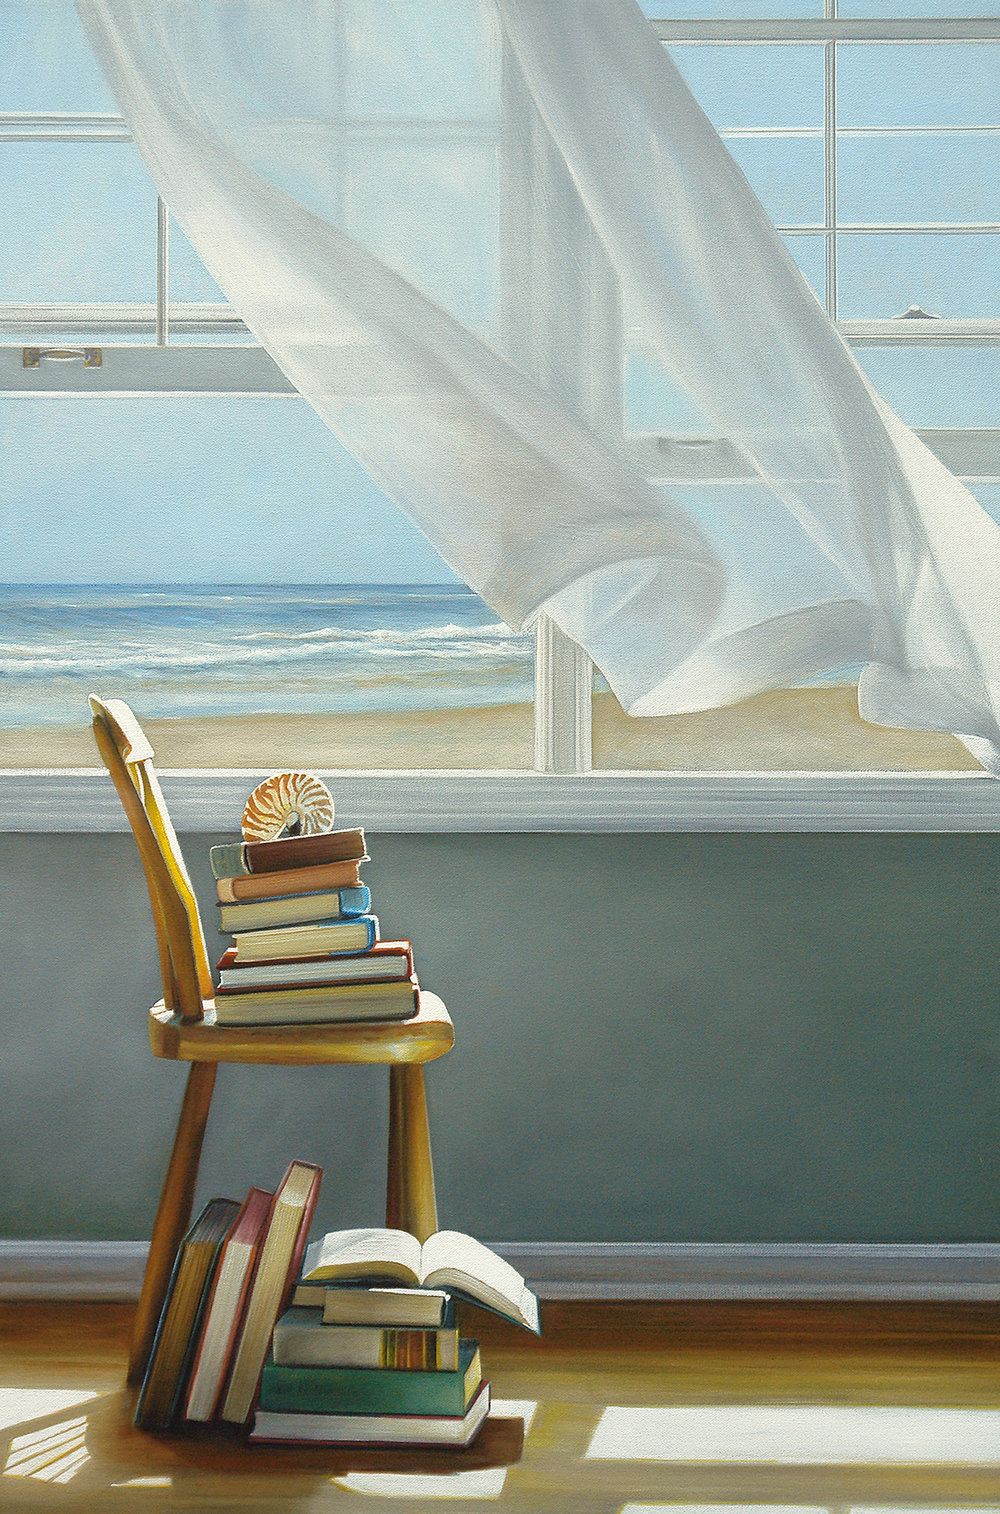 Beach Books No. 3  |  24 x 36  |  Oil on canvas